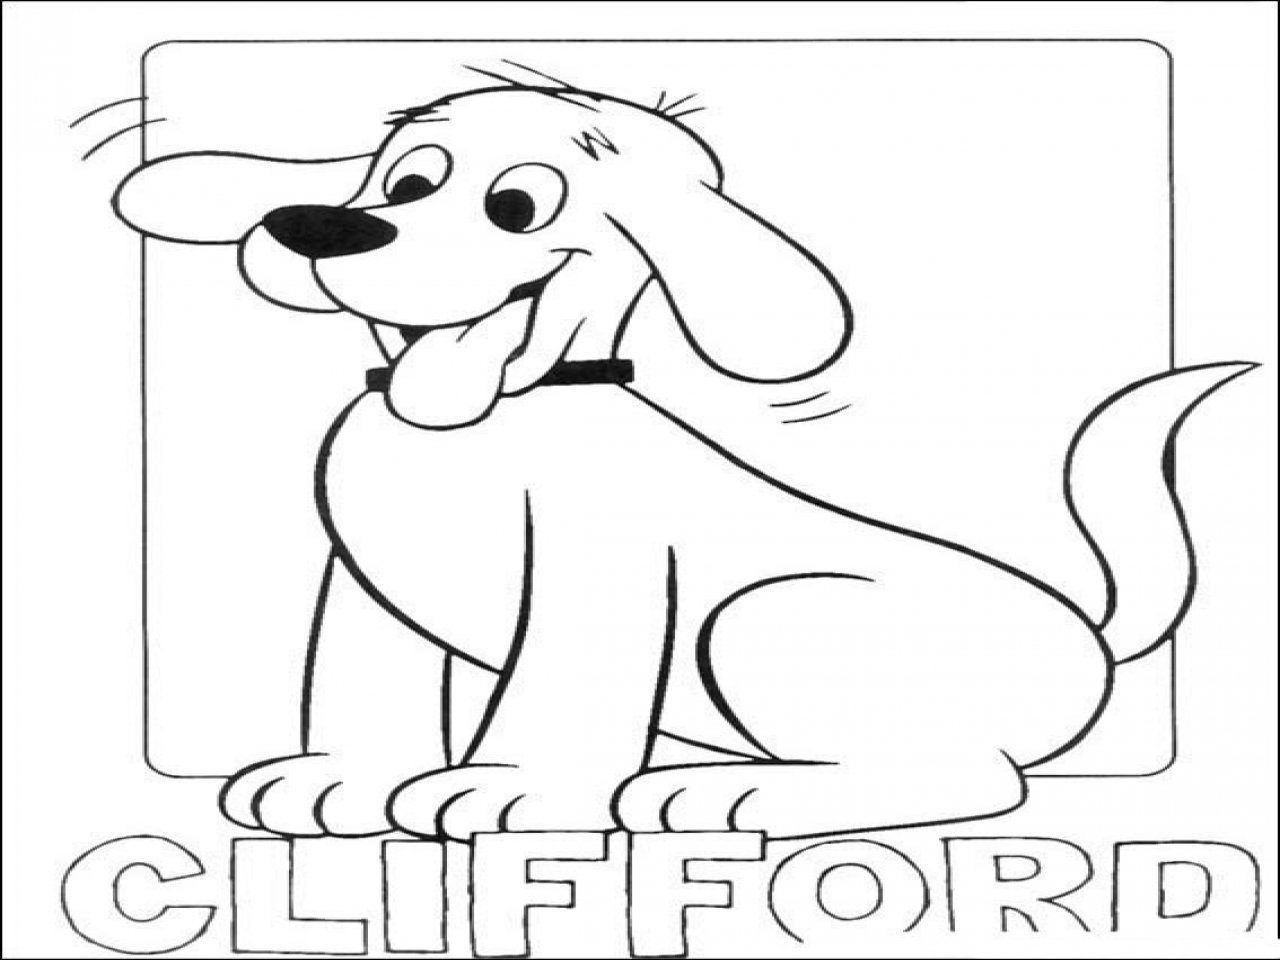 Clifford Coloring Pages With